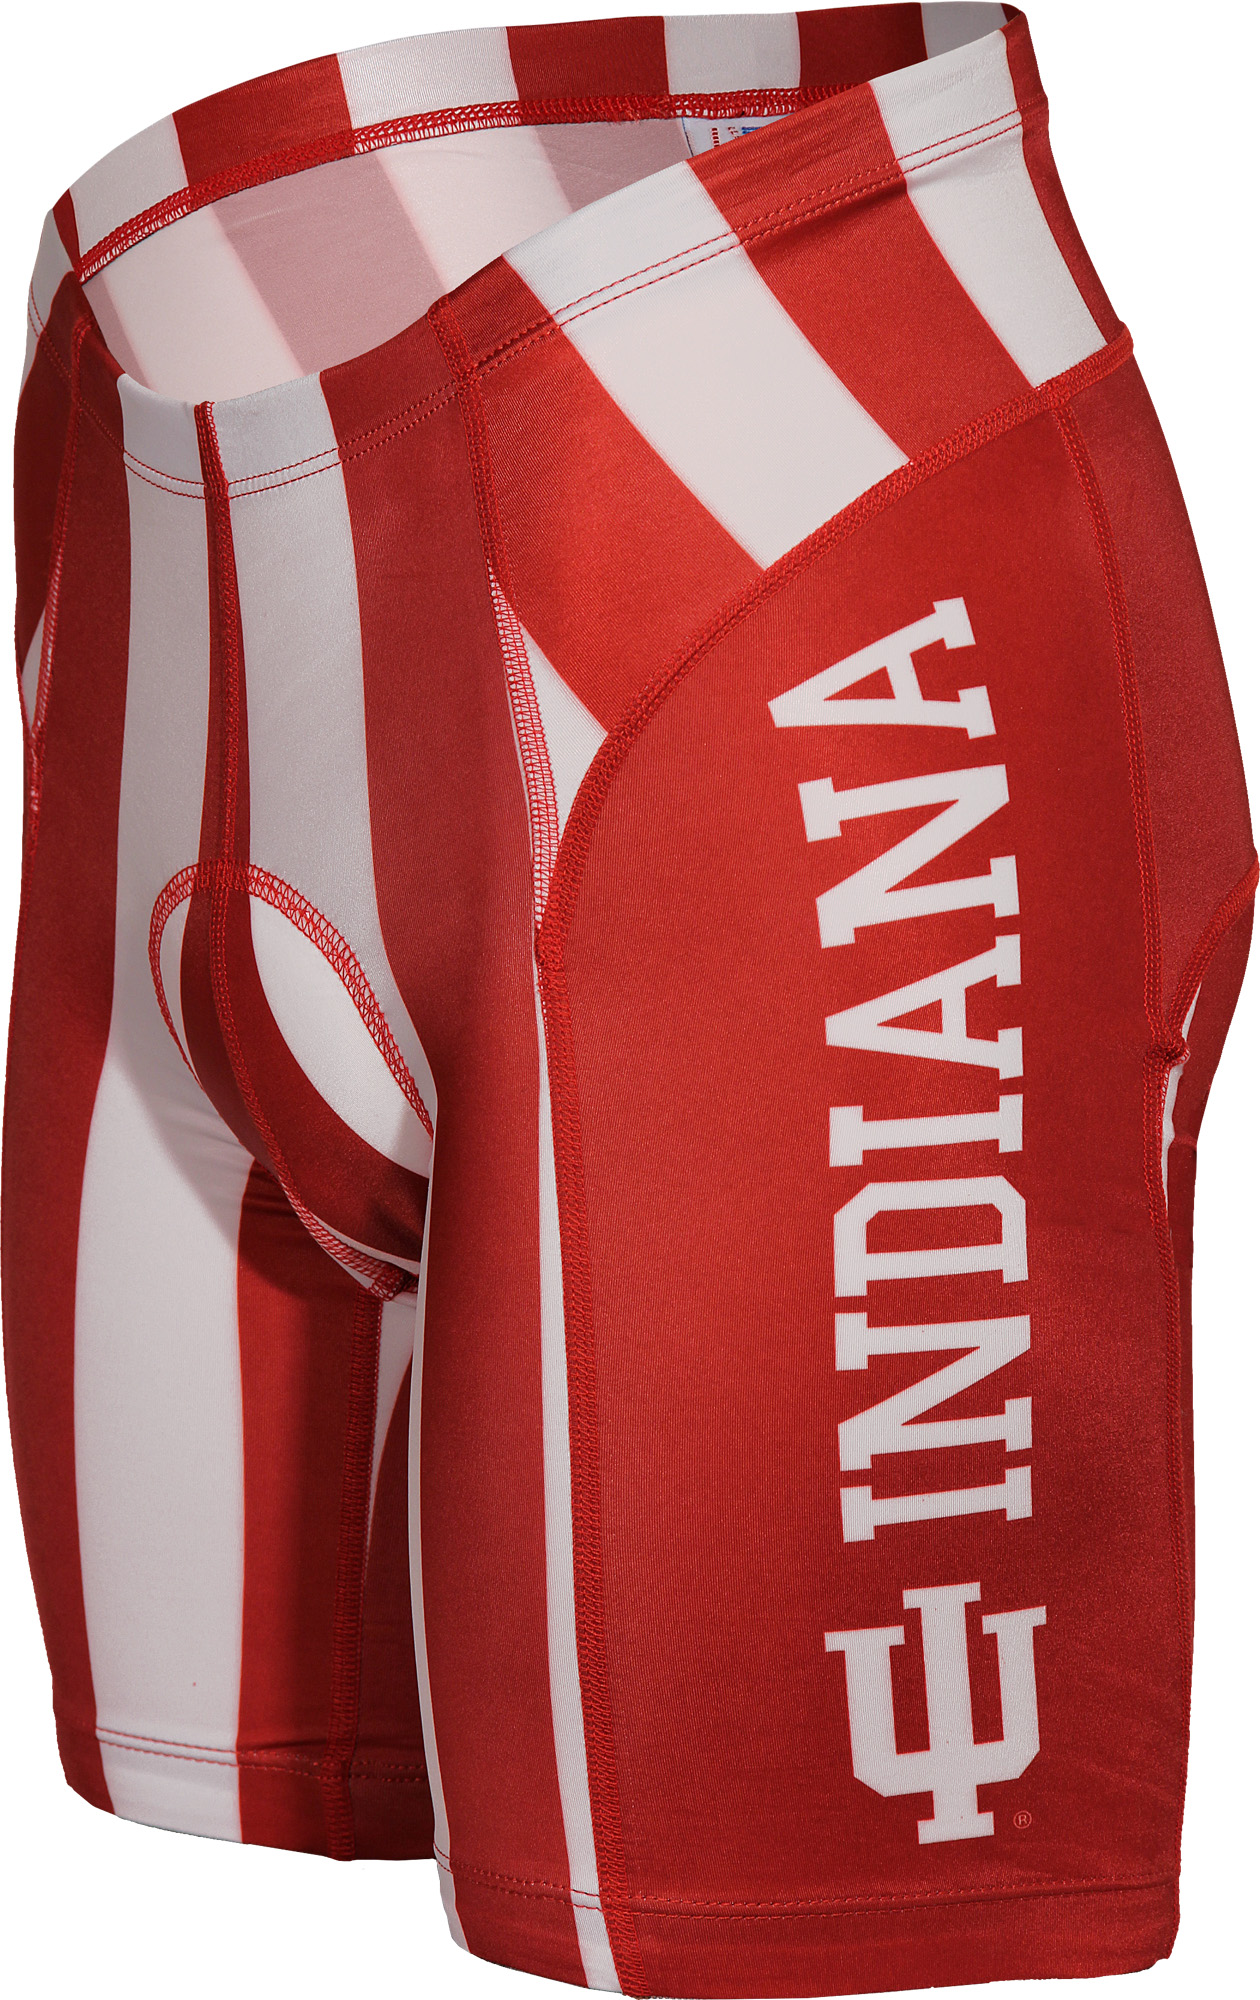 Indiana University Hoosiers Cycling Shorts